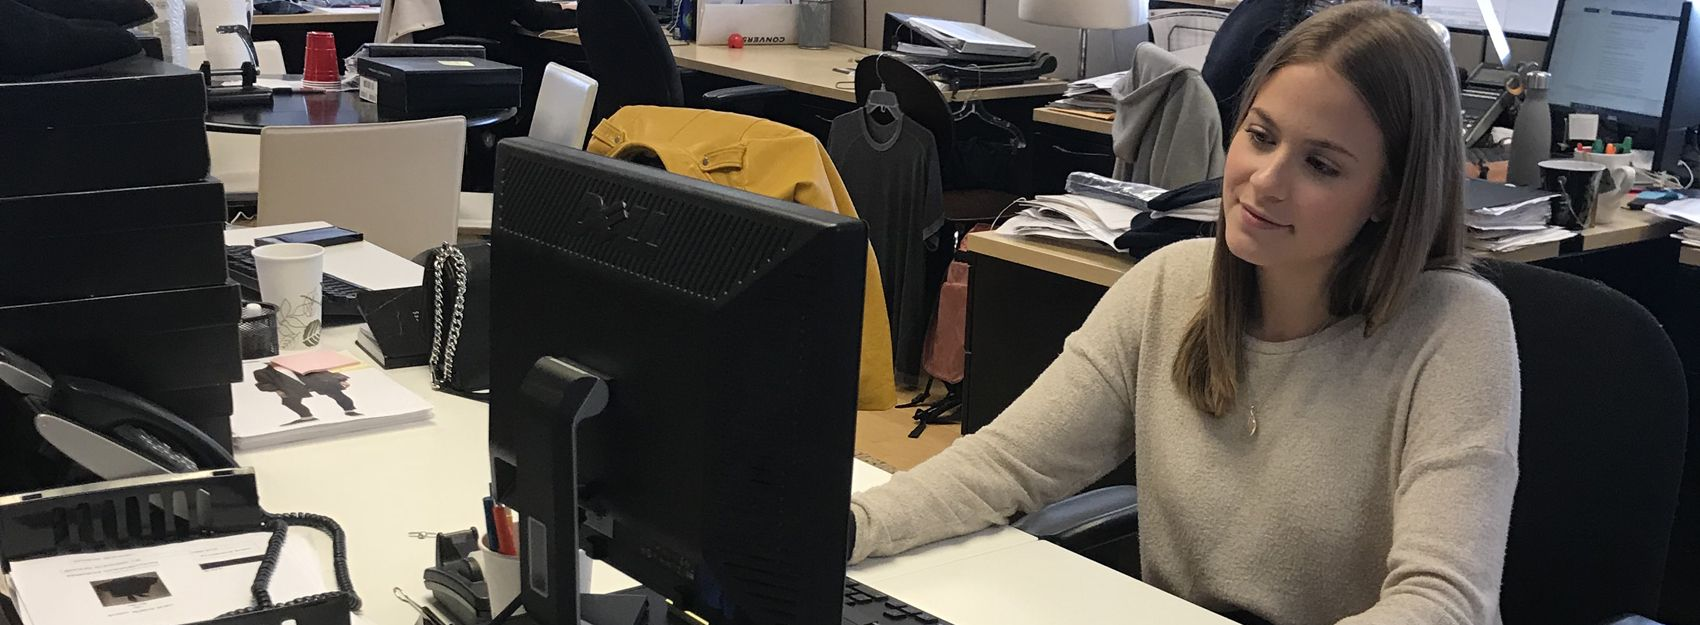 intern working at computer desk in an office